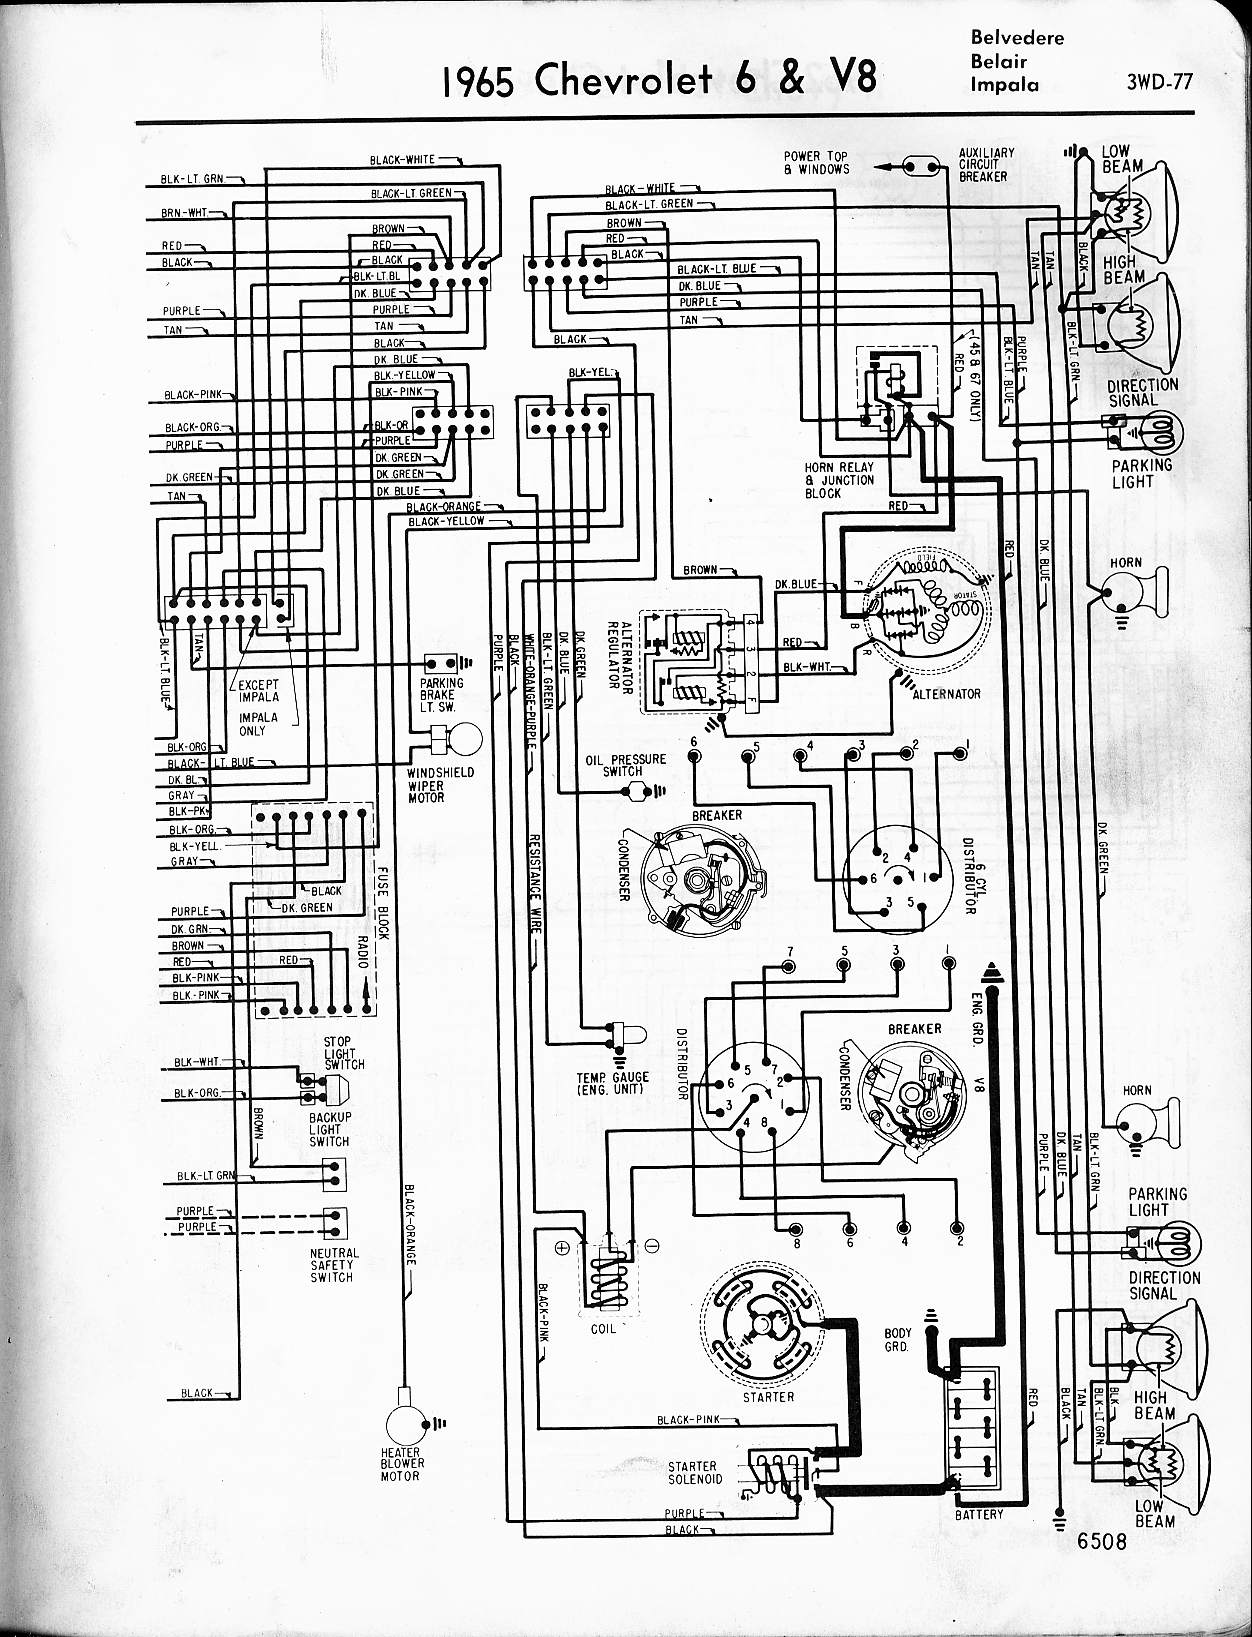 MWireChev65_3WD 077 57 65 chevy wiring diagrams 1966 chevy impala wiring diagram at reclaimingppi.co